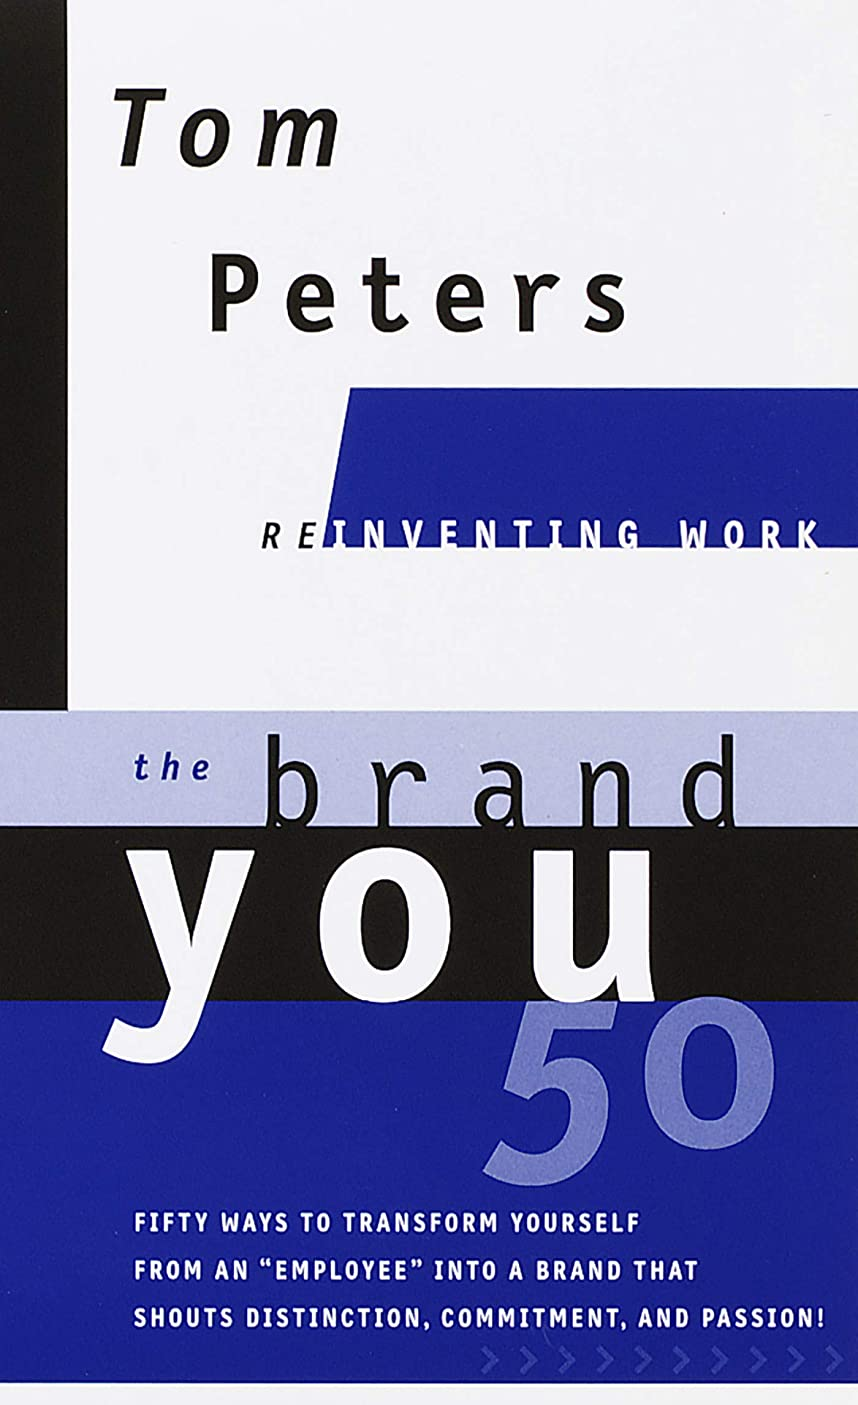 絶滅させる大事にする読みやすいThe Brand You 50 (Reinventing Work): Fifty Ways to Transform Yourself from an 'Employee' into a Brand That Shouts Distinction, Commitment, and Passion! (Reinventing Work Series) (English Edition)